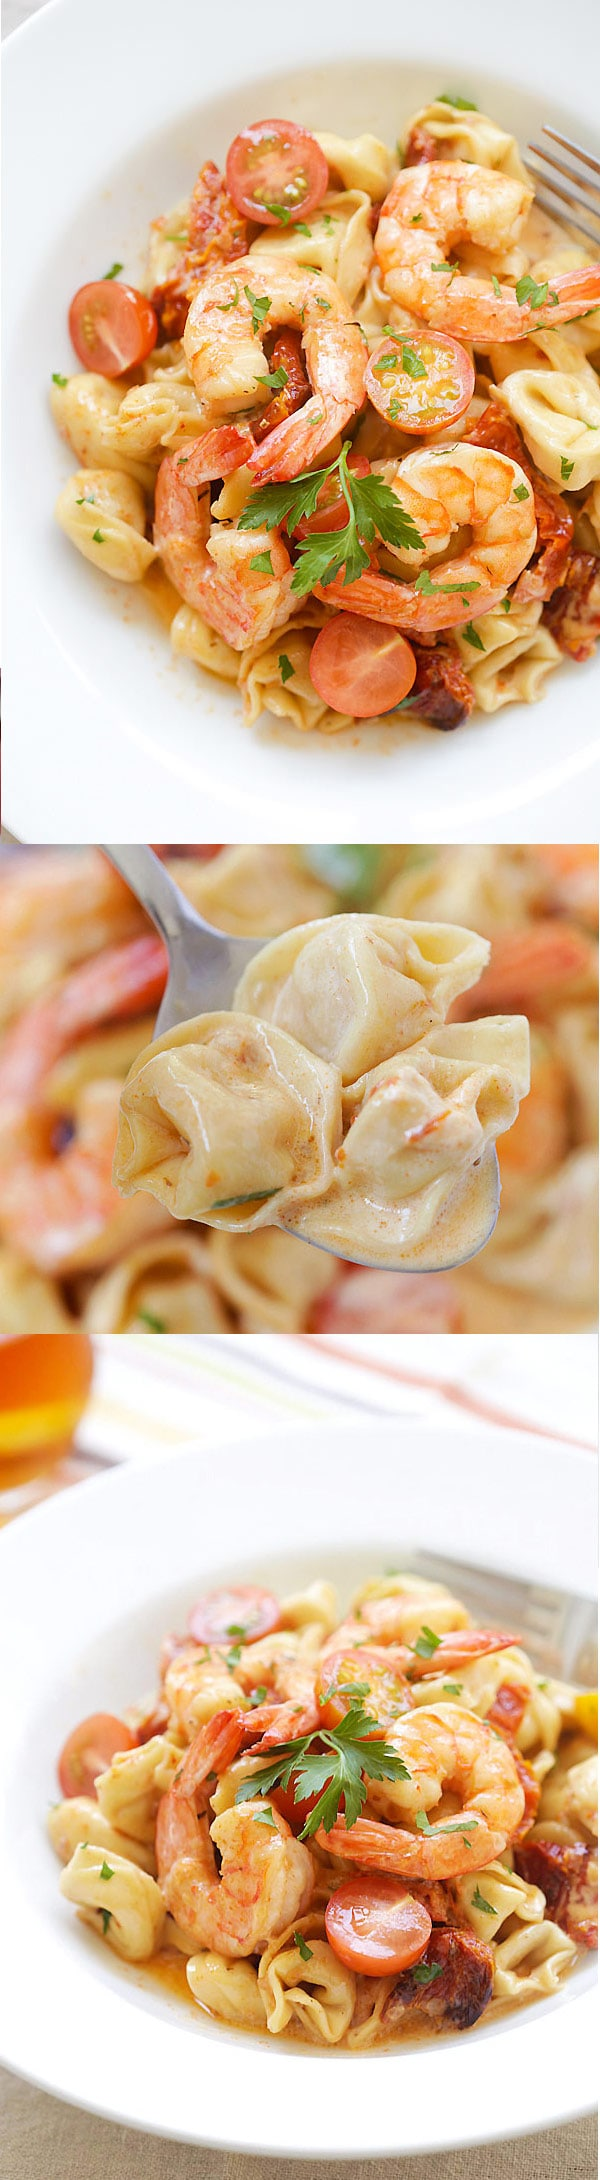 Amazing recipe for homemade Shrimp & Sun-Dried Tomato Tortellini. Budget-friendly and tastes better than any Italian restaurant's! | rasamalaysia.com